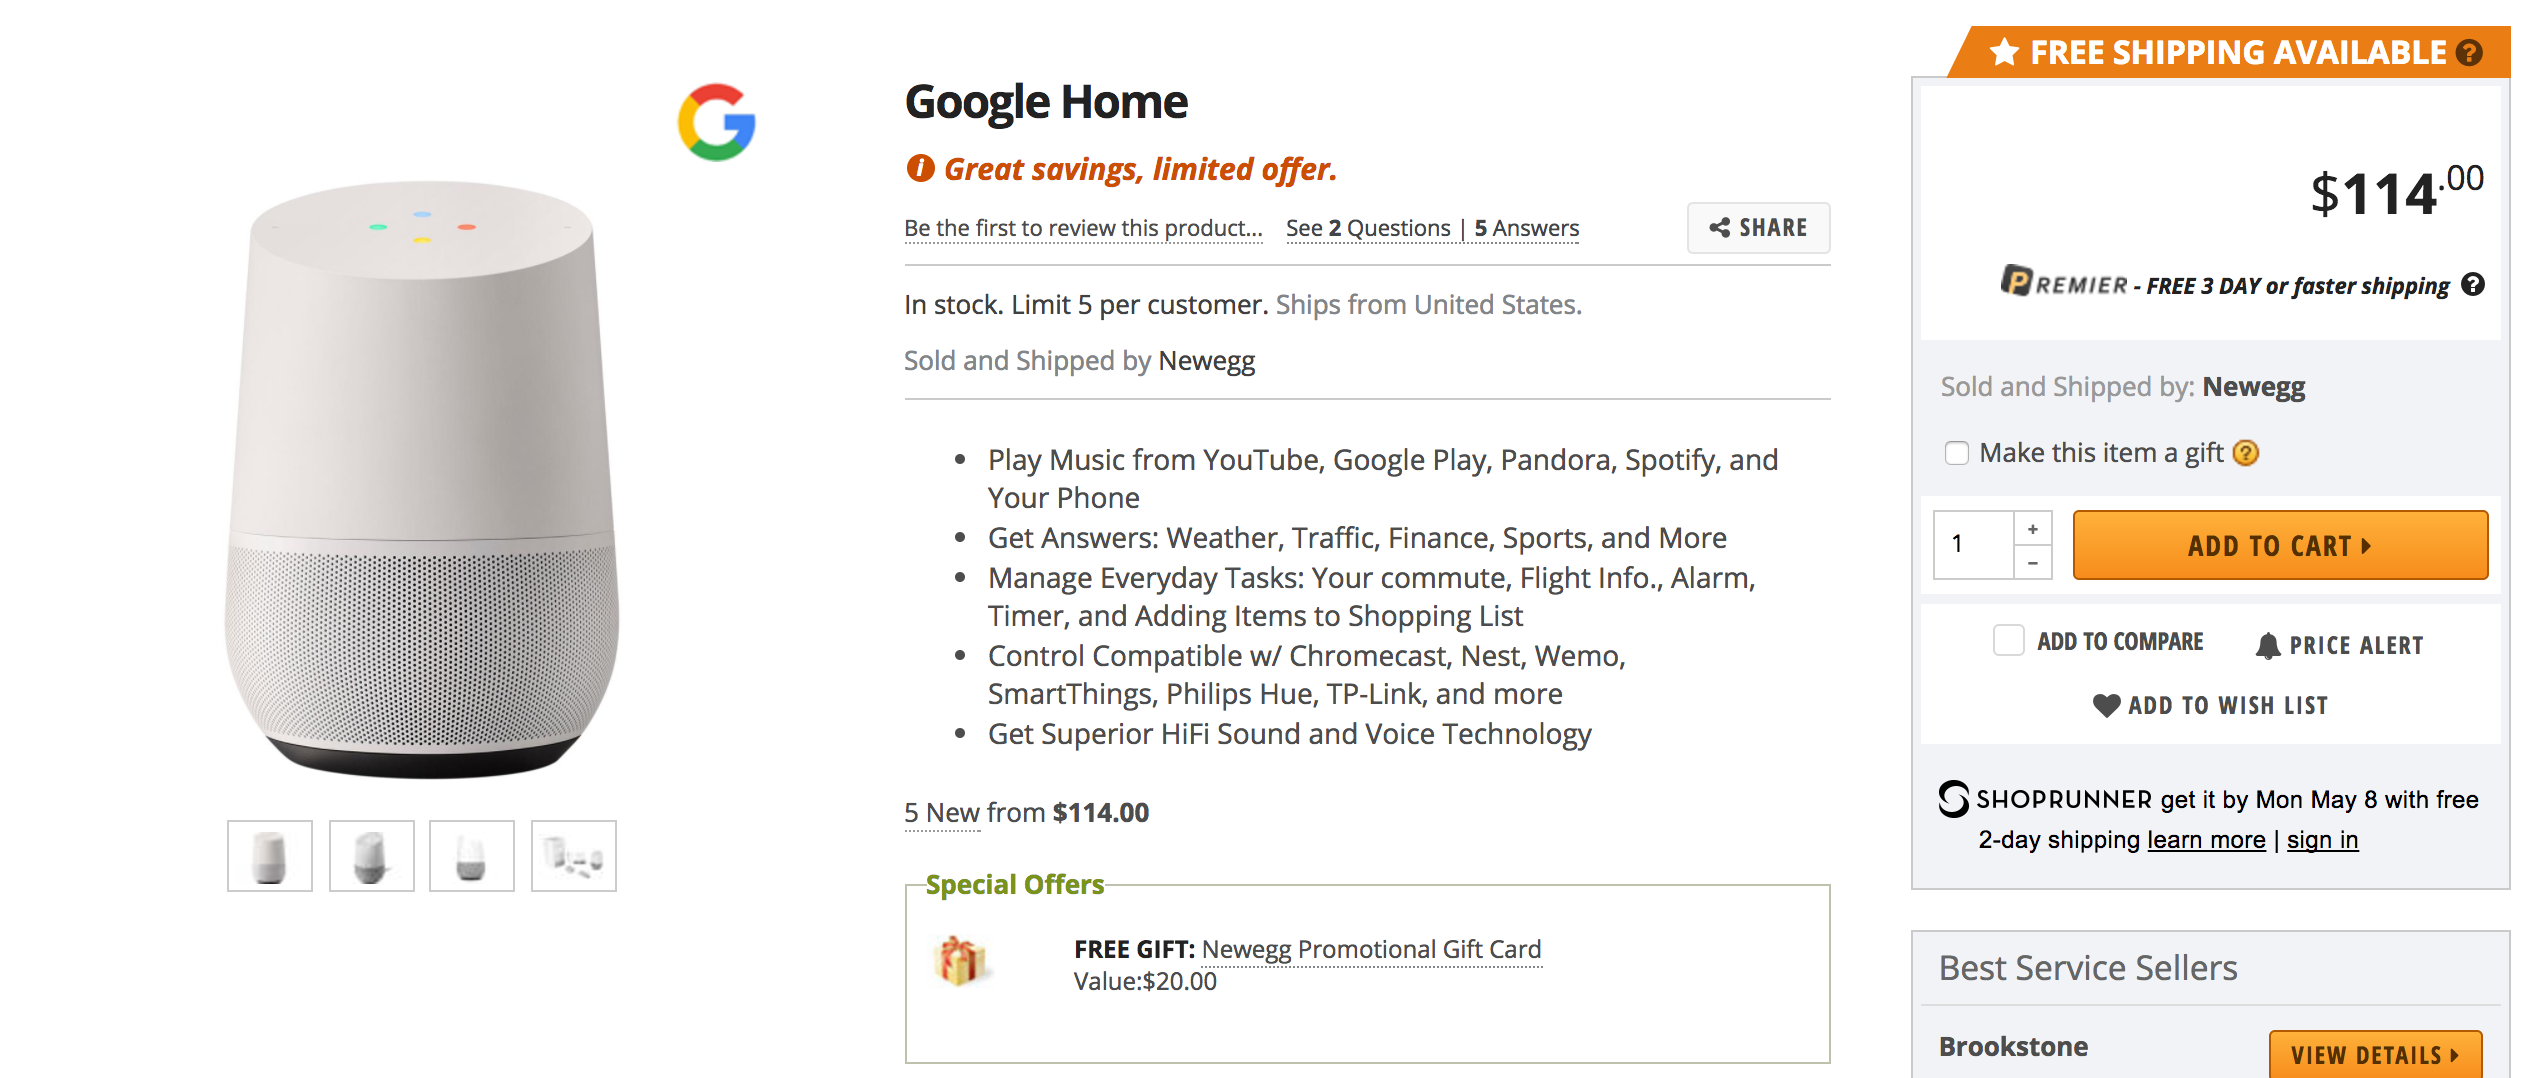 Google Home for $15 off plus $20